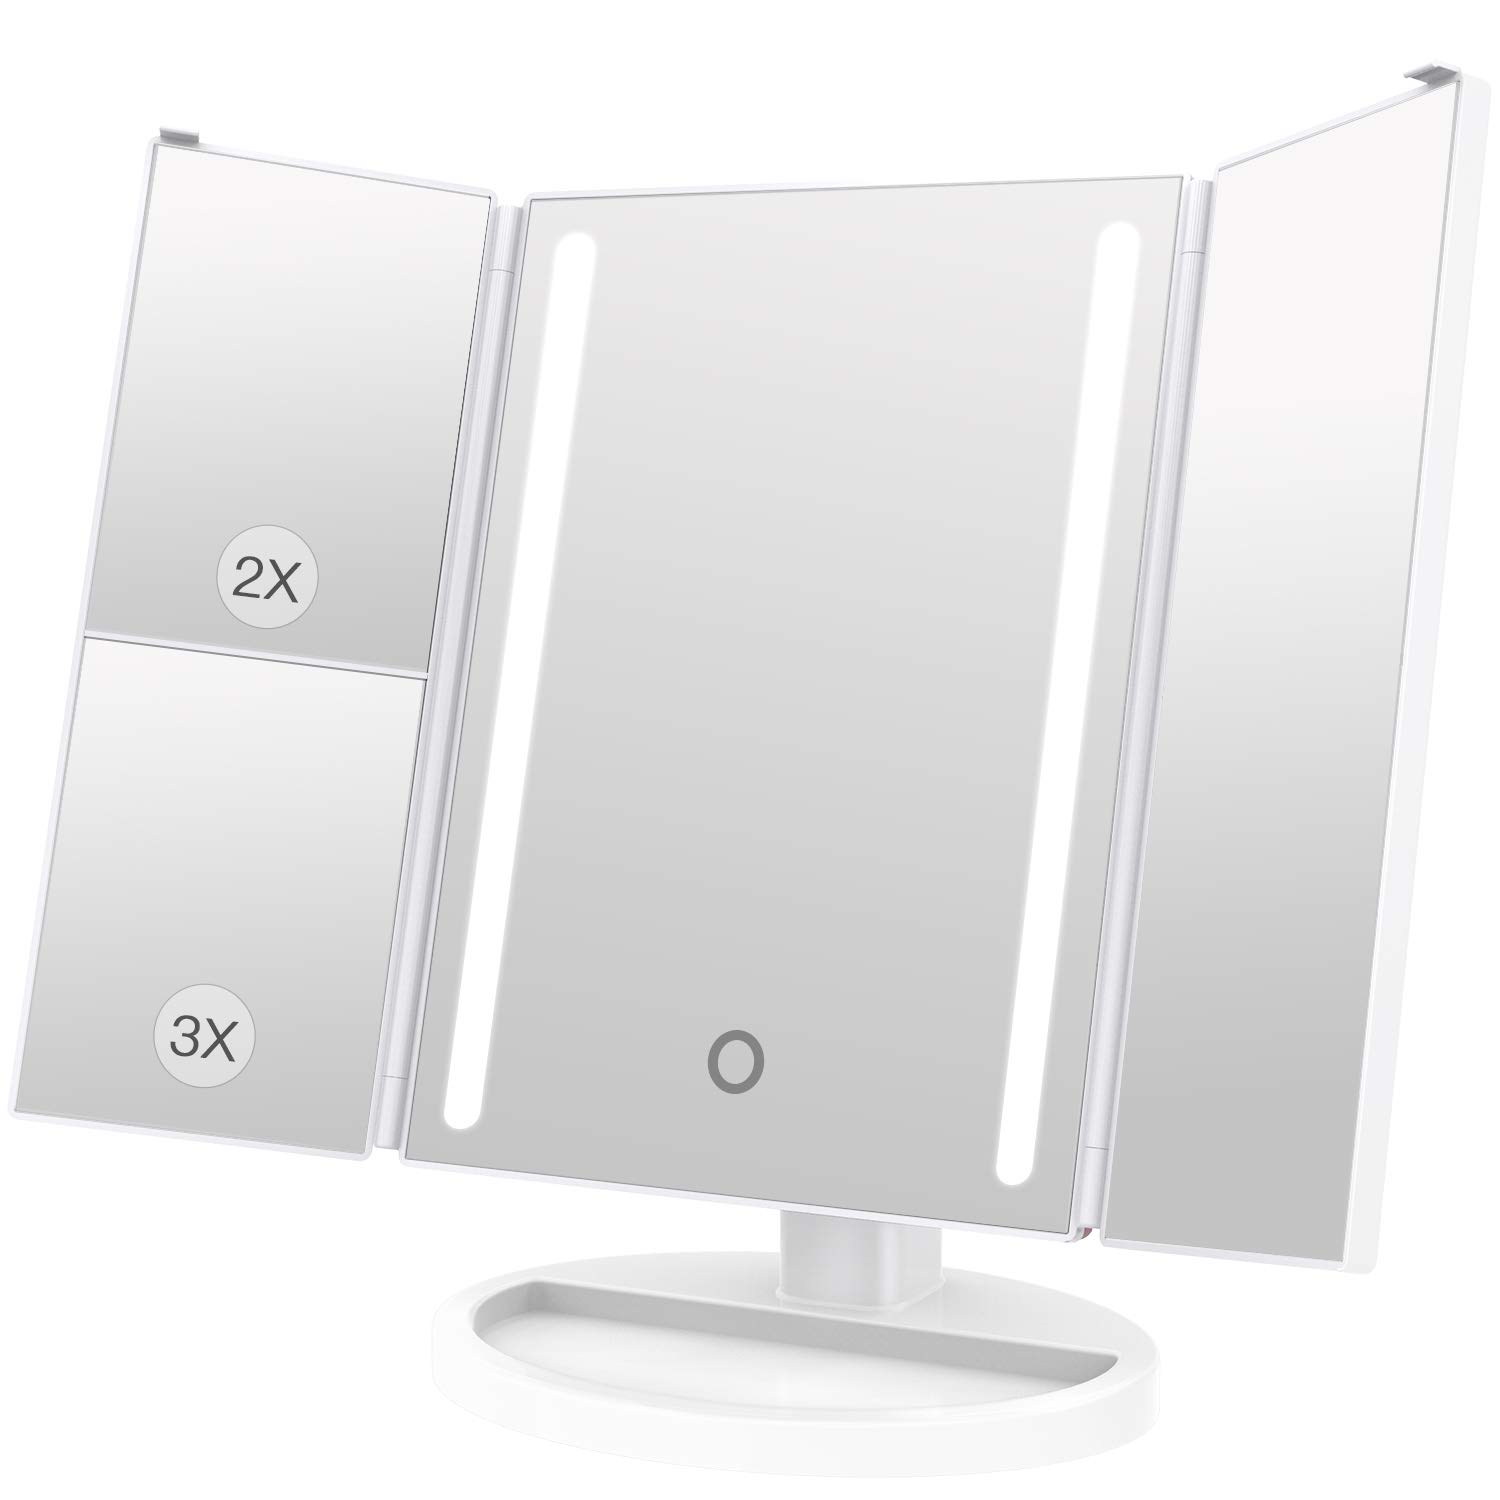 BESTOPE Makeup Vanity Mirror with 24 LED Lights, 3X/2X Magnifying Led Makeup Mirror,15 inch Larger Touch Screen,Dual Power Supply,180° Adjustable Rotation,Countertop Cosmetic Mirror